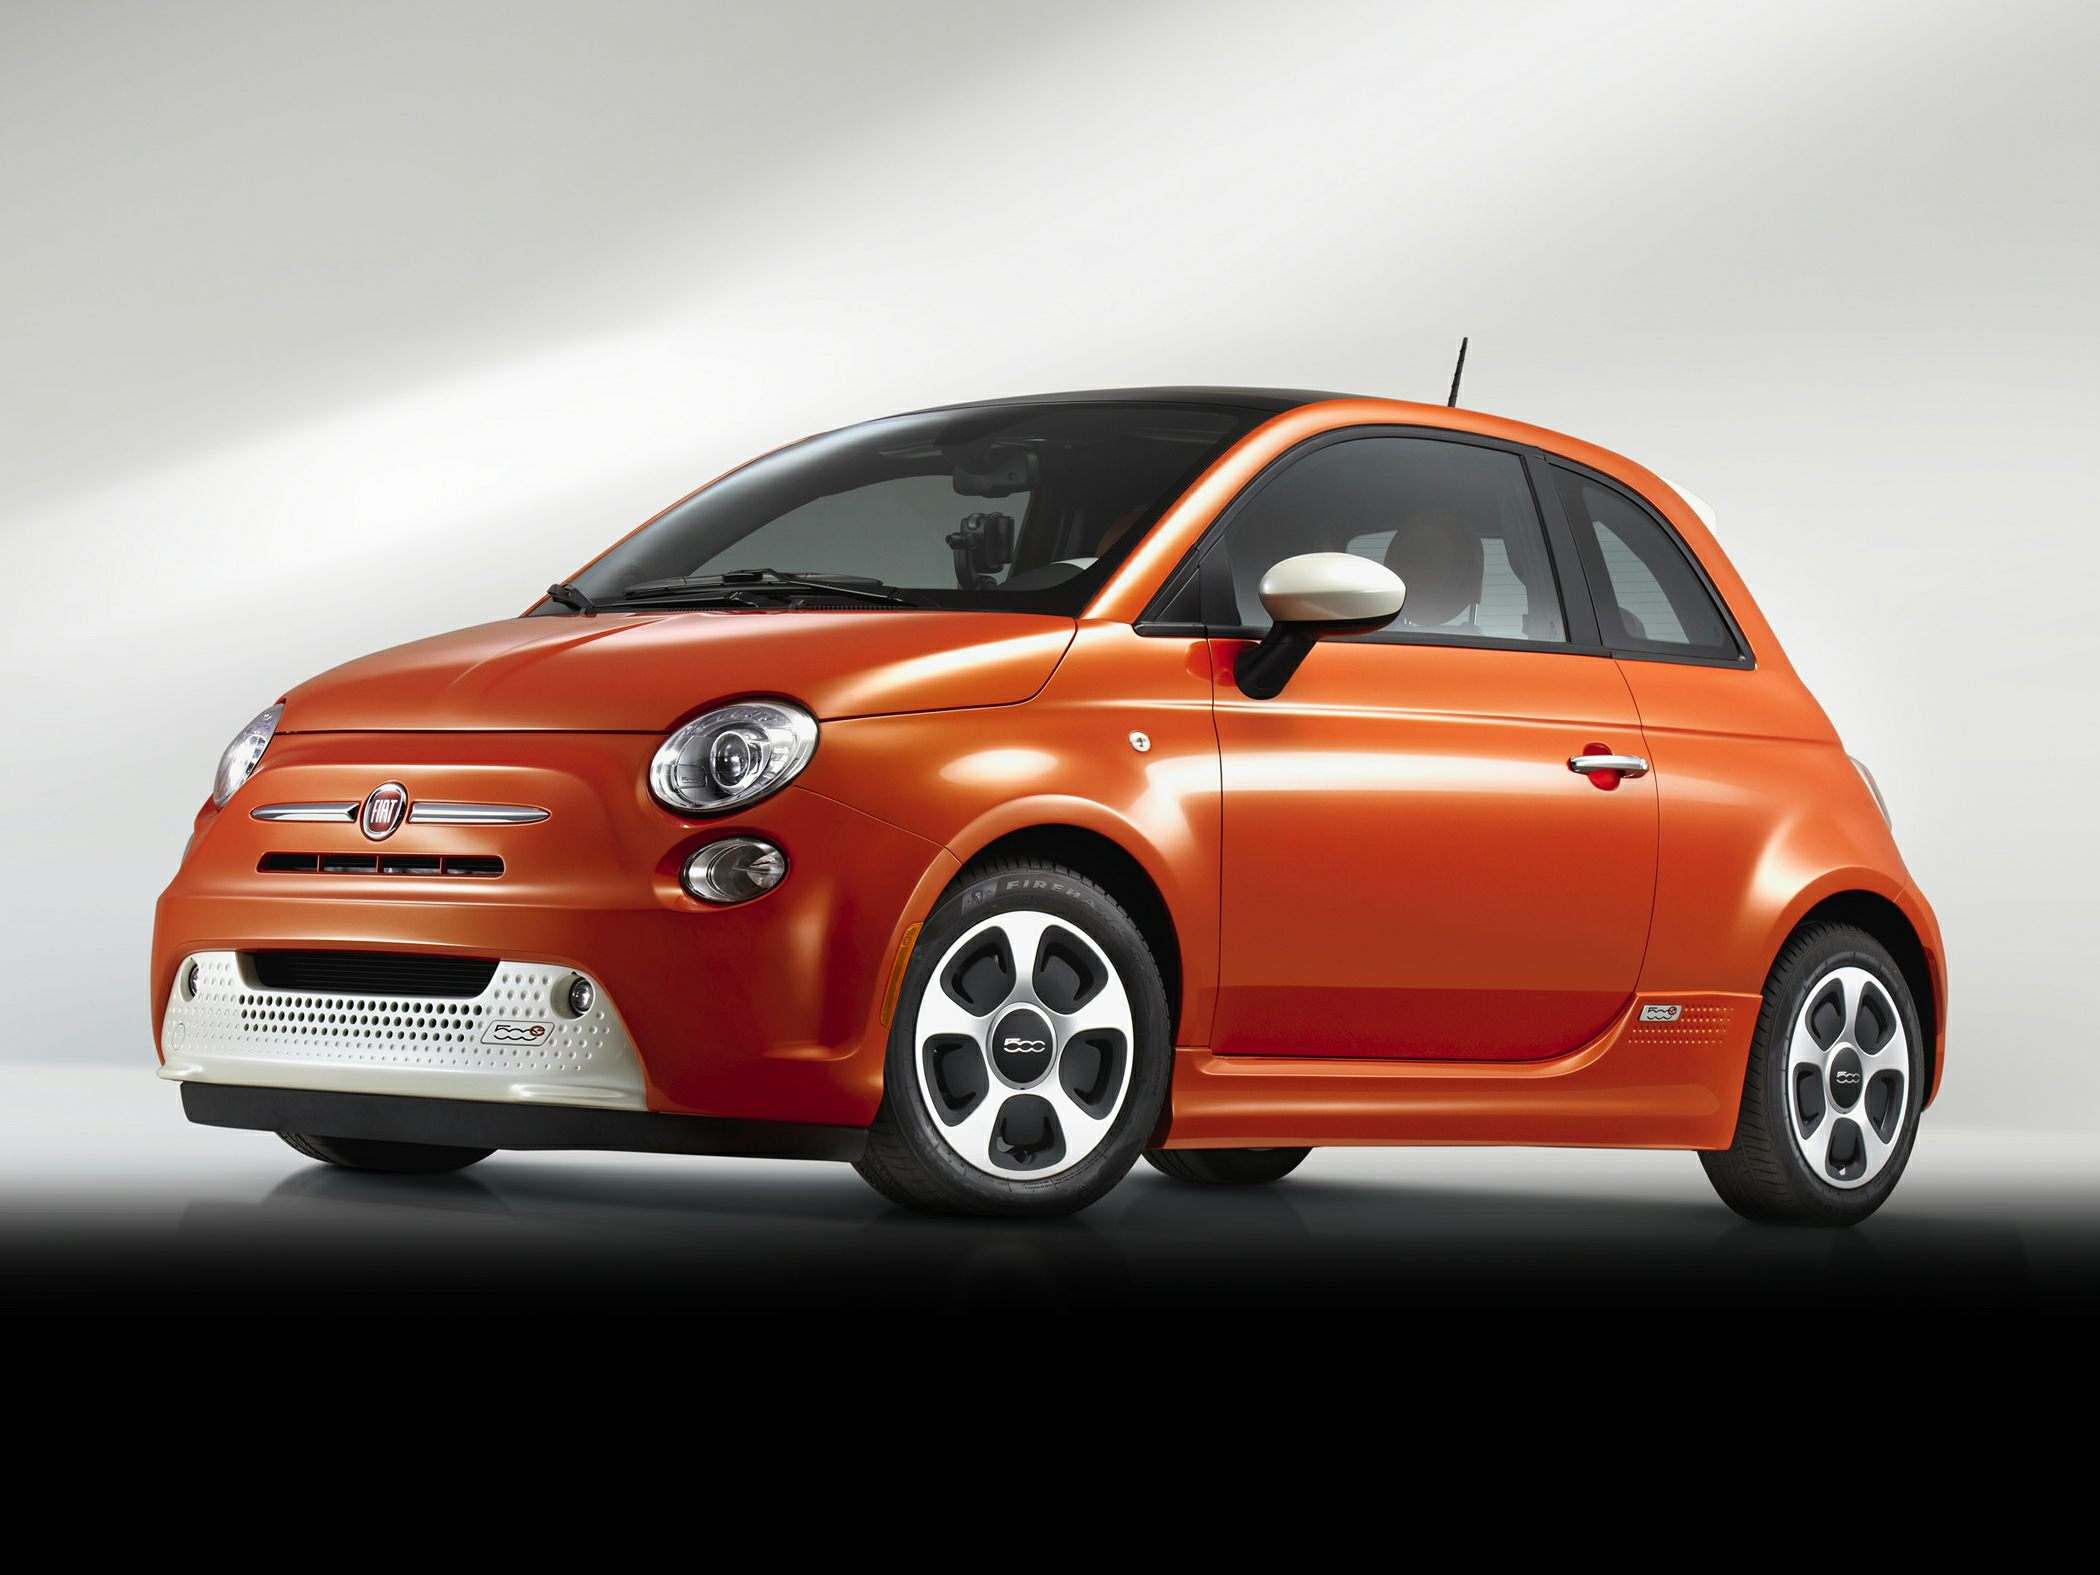 2017 fiat 500e deals prices incentives leases overview carsdirect. Black Bedroom Furniture Sets. Home Design Ideas